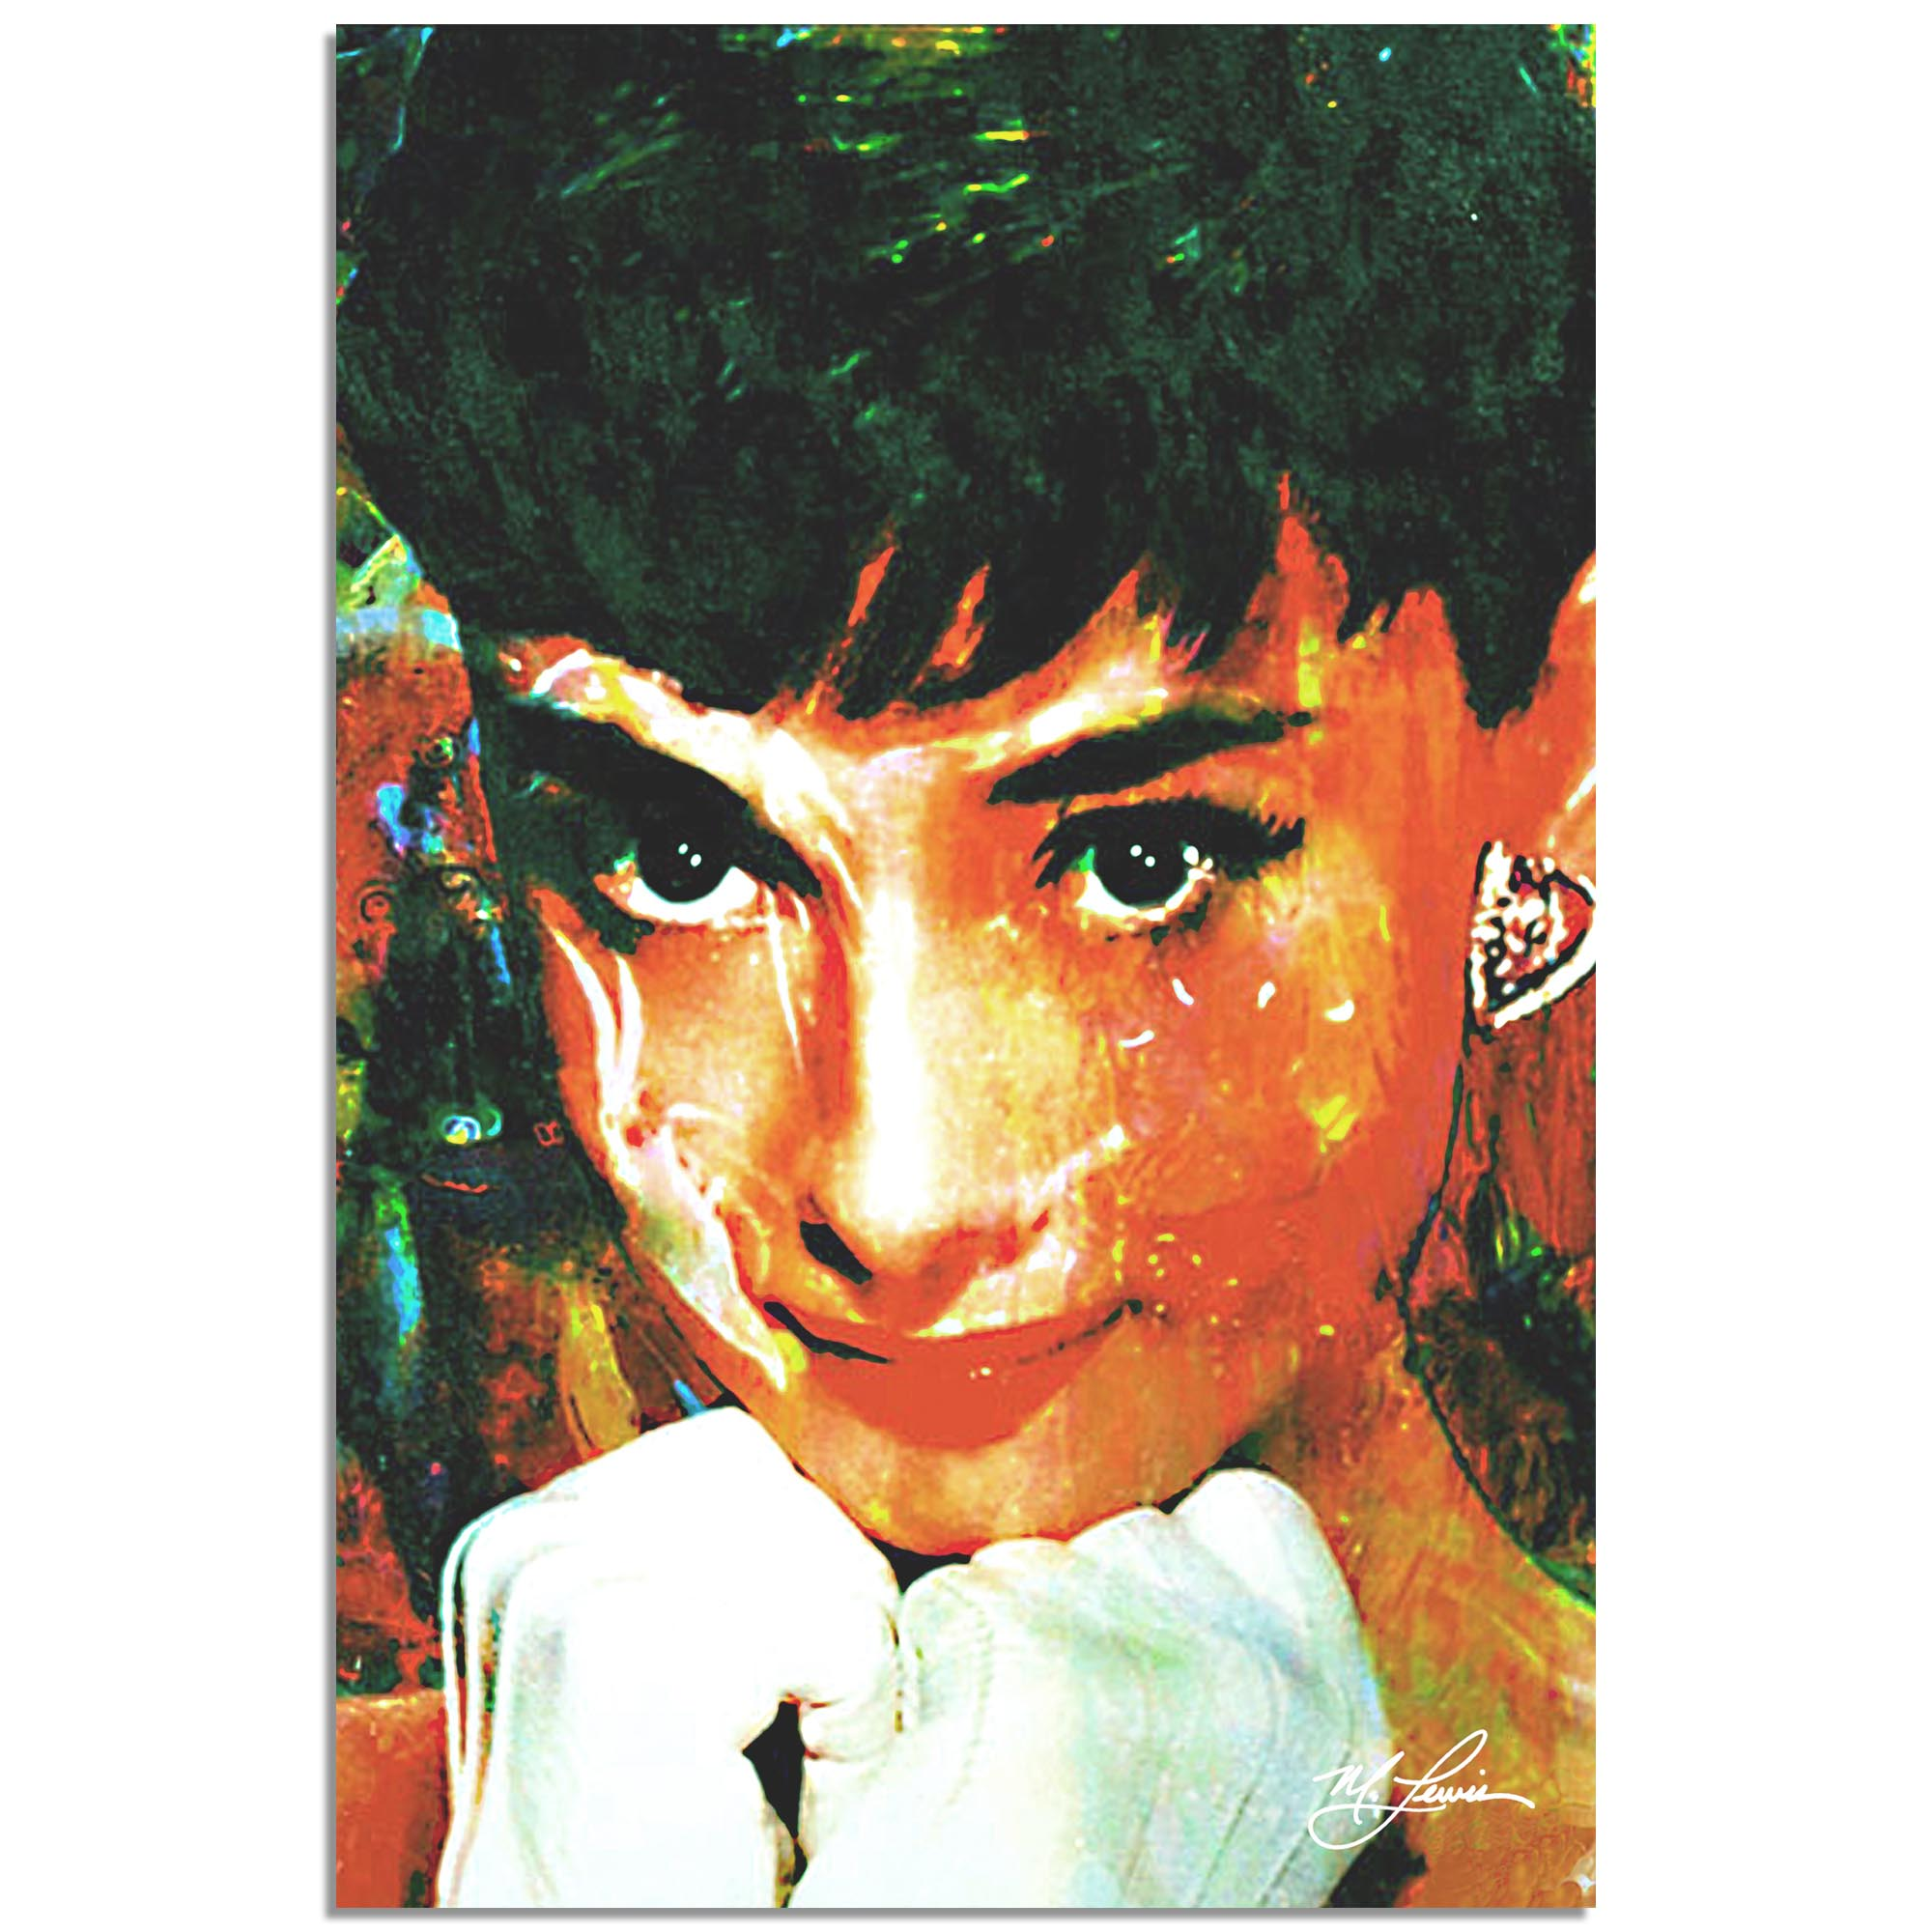 Audrey Hepburn Tiffany Delight by Mark Lewis - Celebrity Pop Art on Metal or Plexiglass